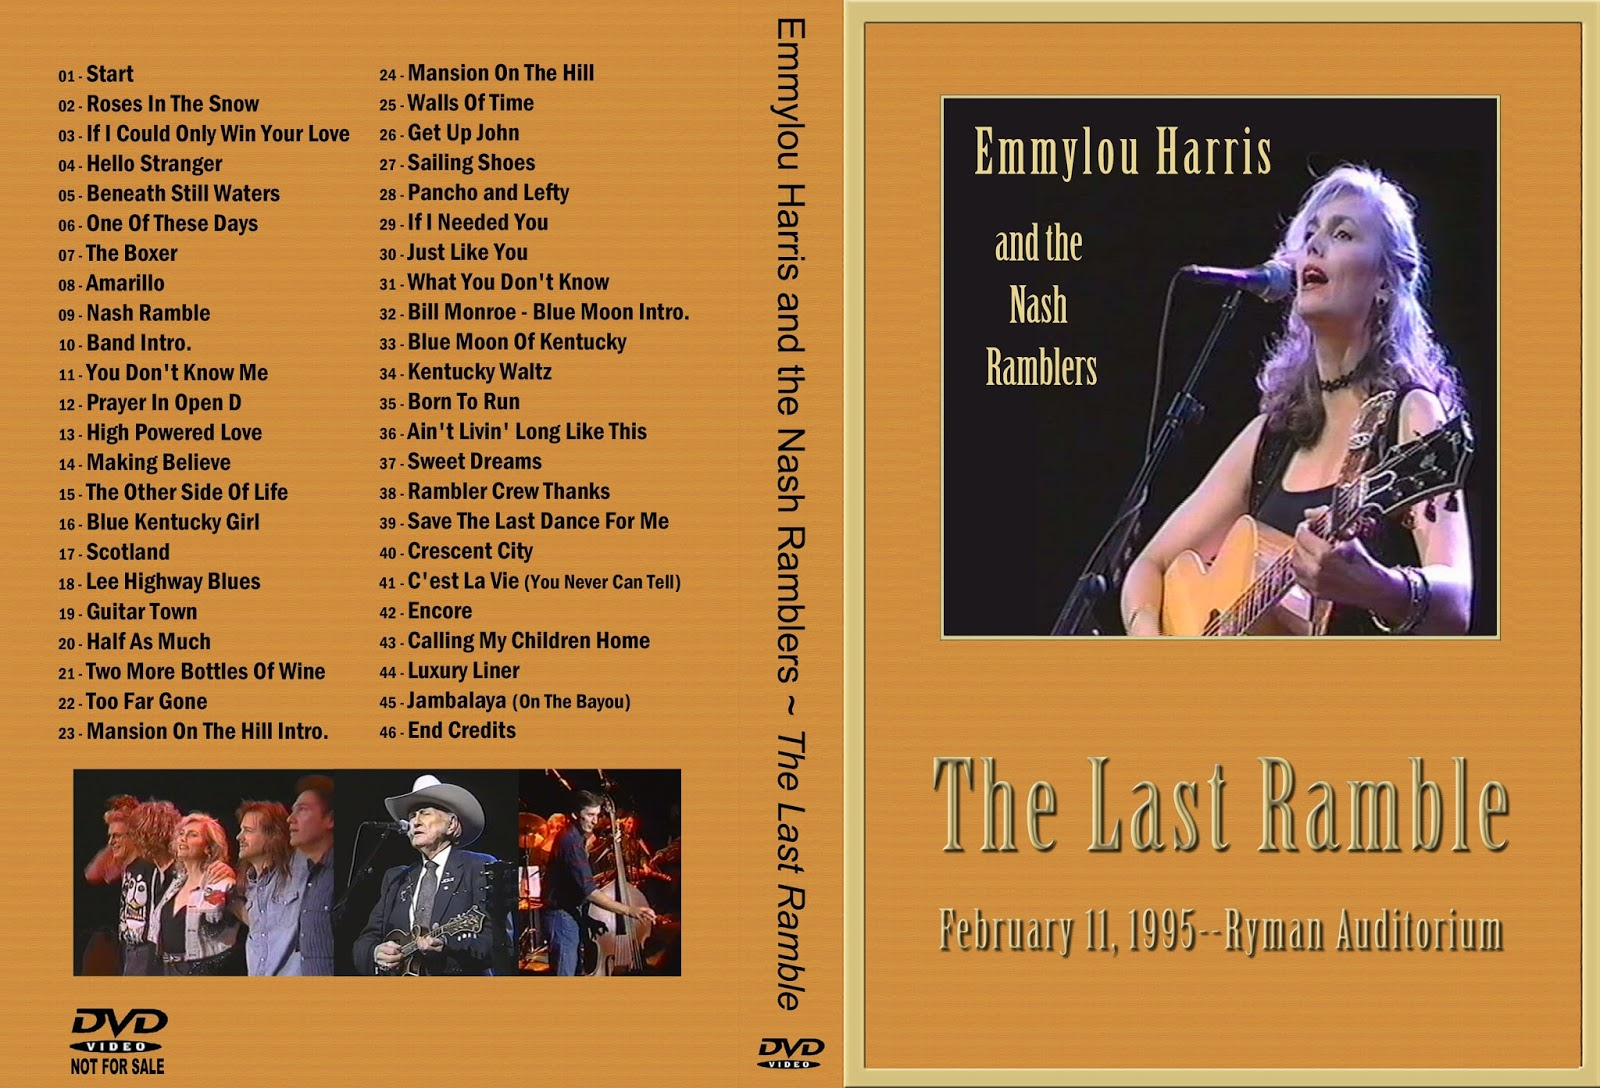 Peter C's Music TV & Video Archives: EMMYLOU HARRIS on DVD Emmylou Harris Song List